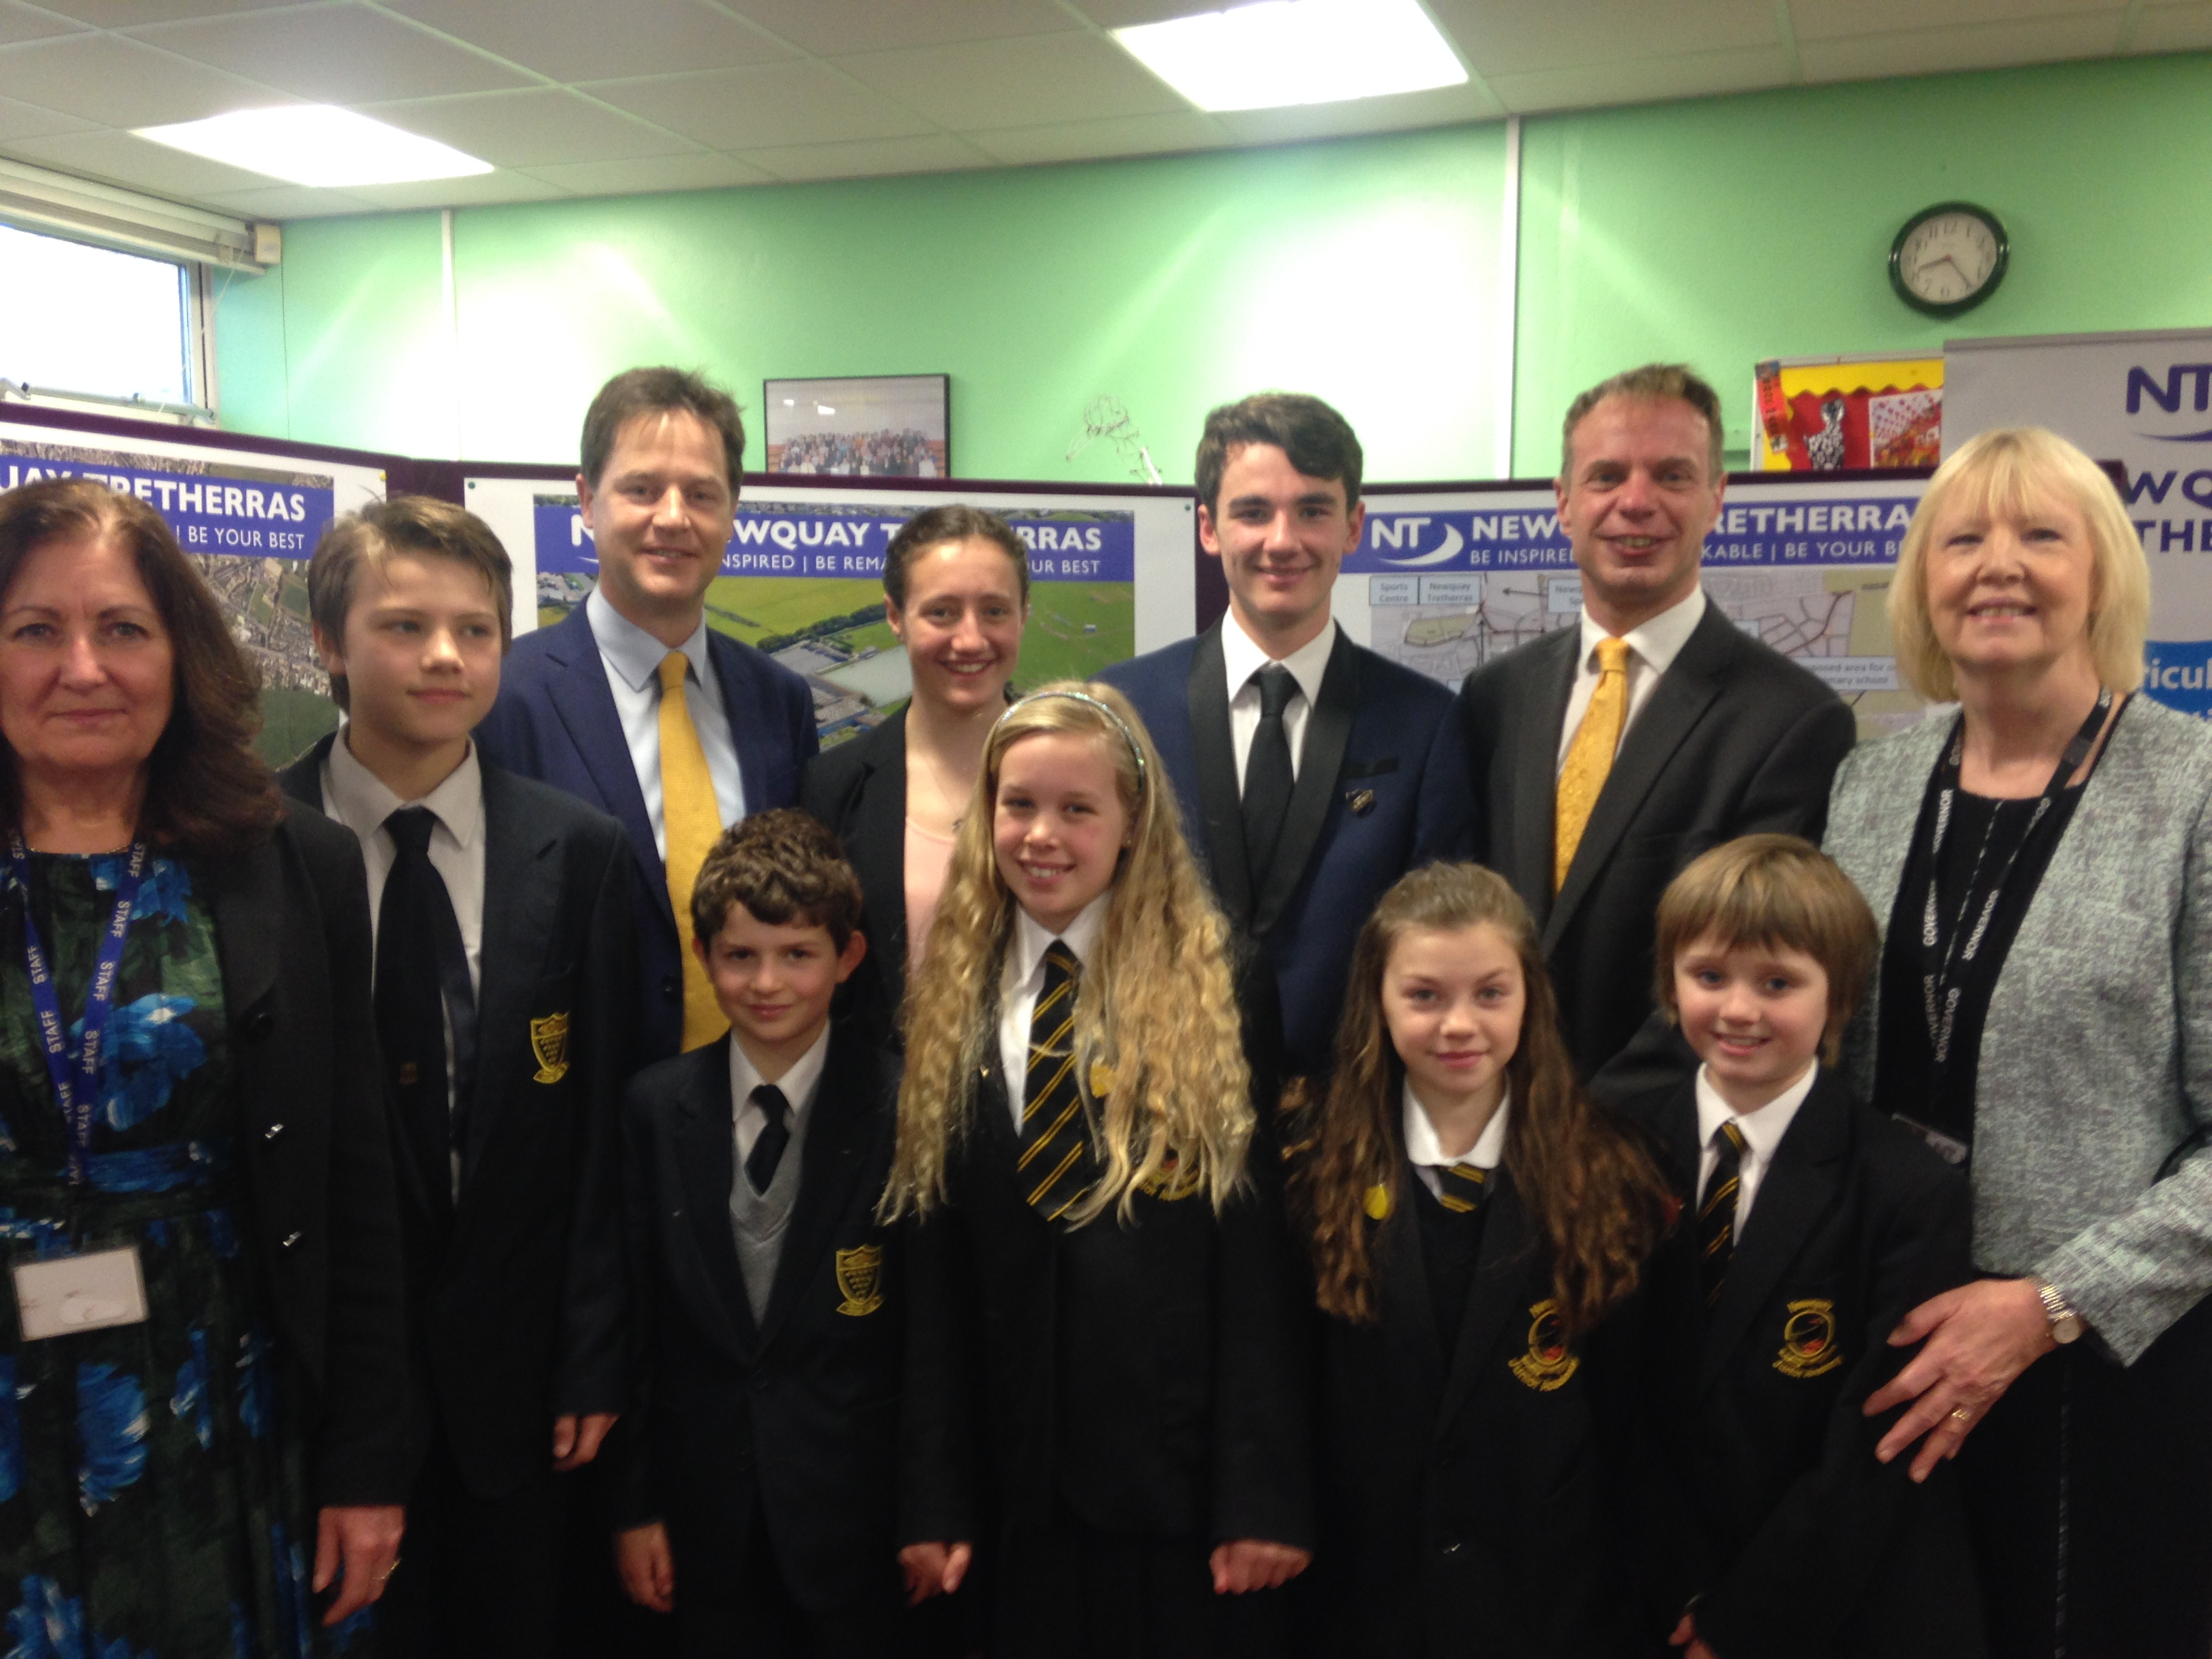 Deputy Prime Minister Announces Newquay School Rebuild Funding